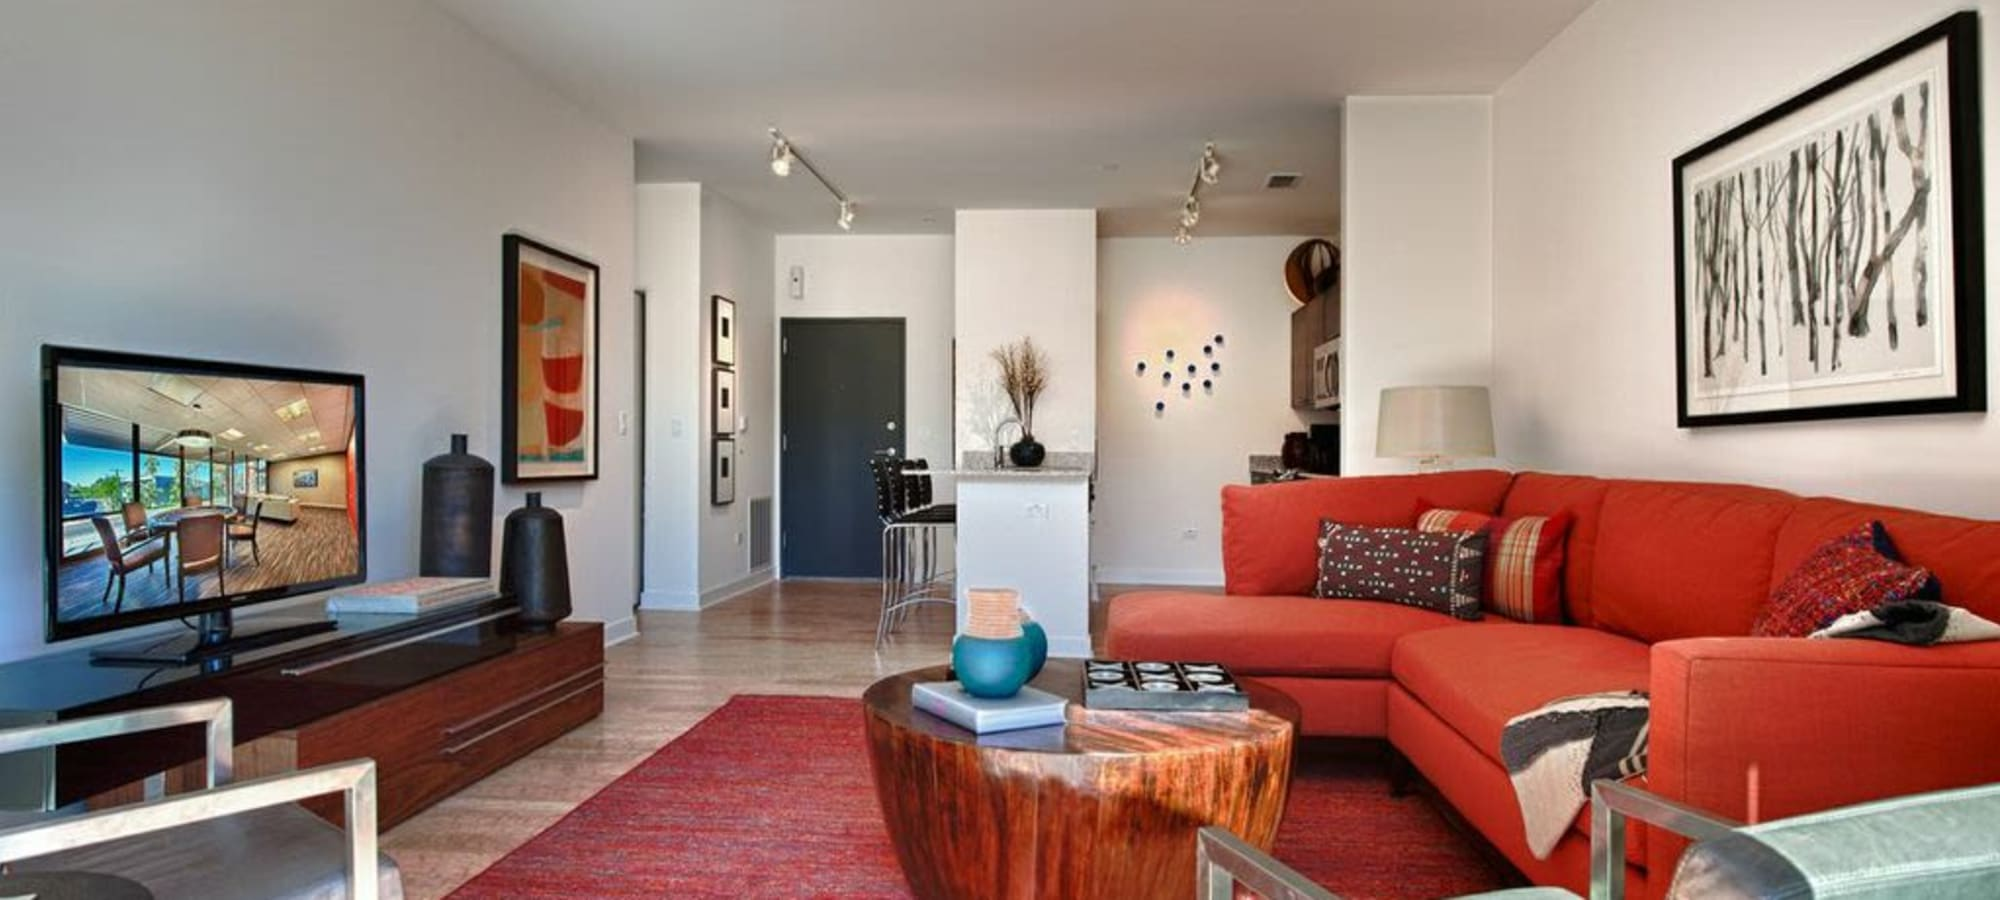 Our apartments in Phoenix, Arizona showcase a luxury living room